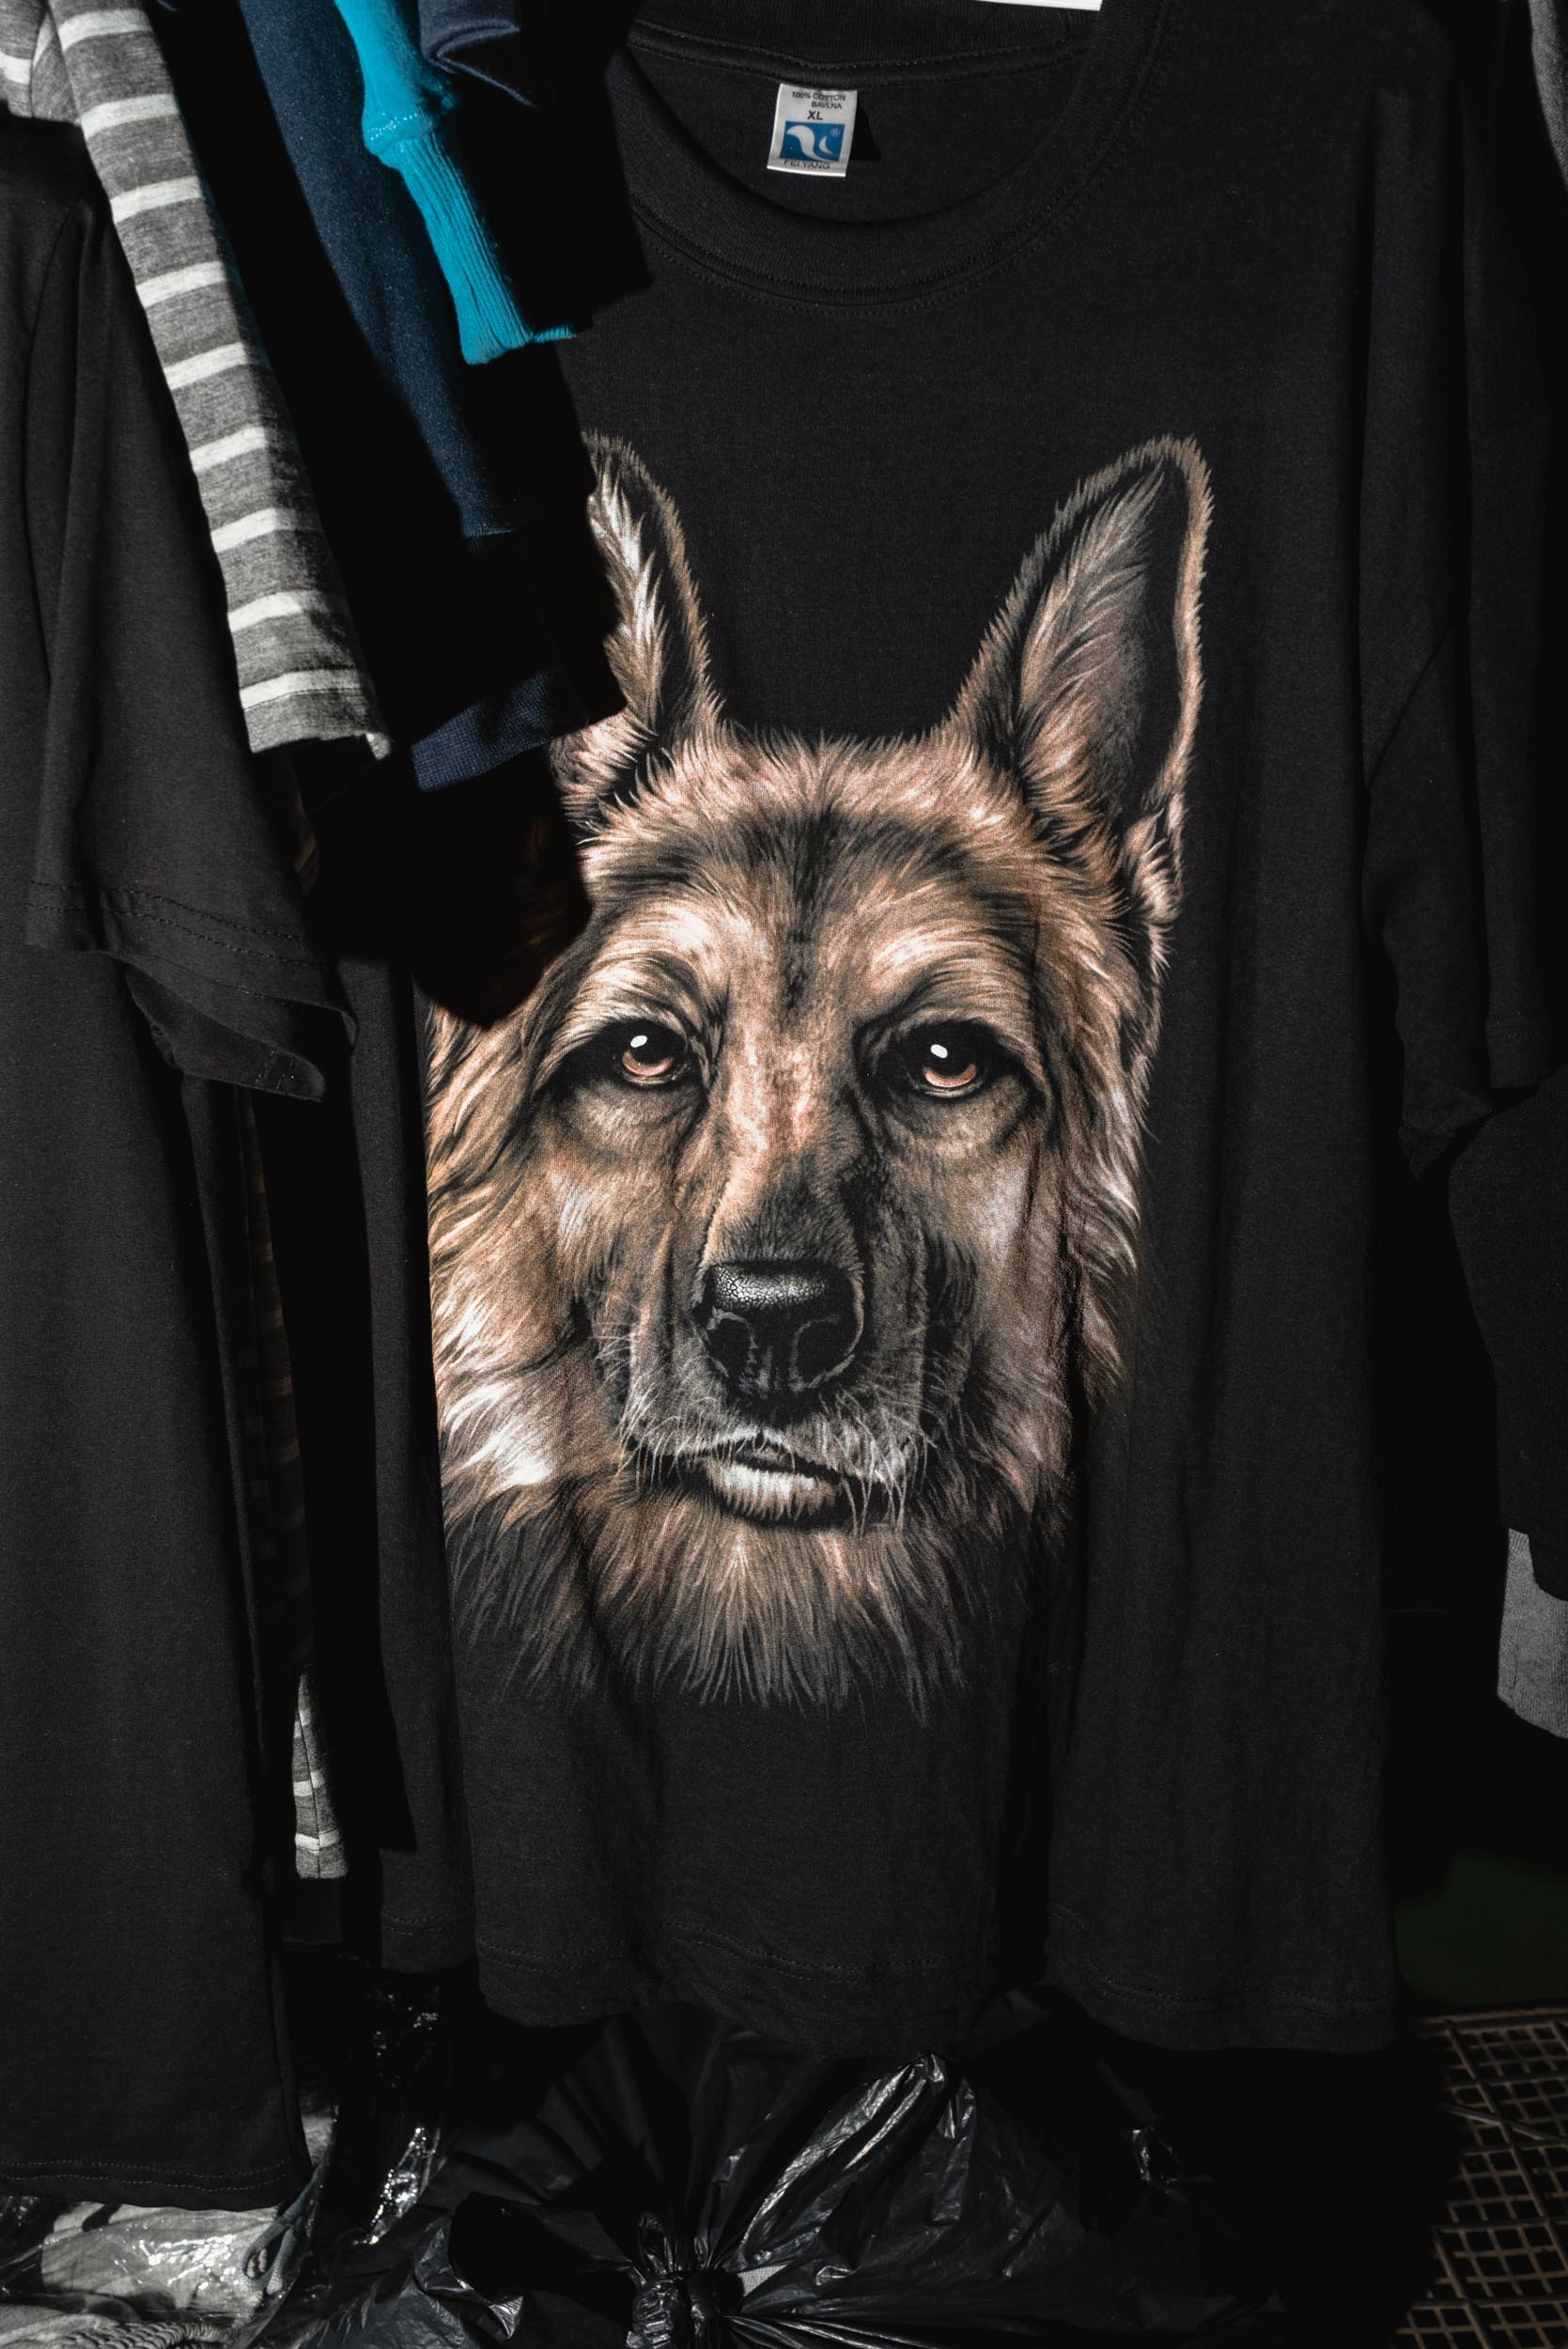 Dog head t-shirt at Marketplace Miletičova